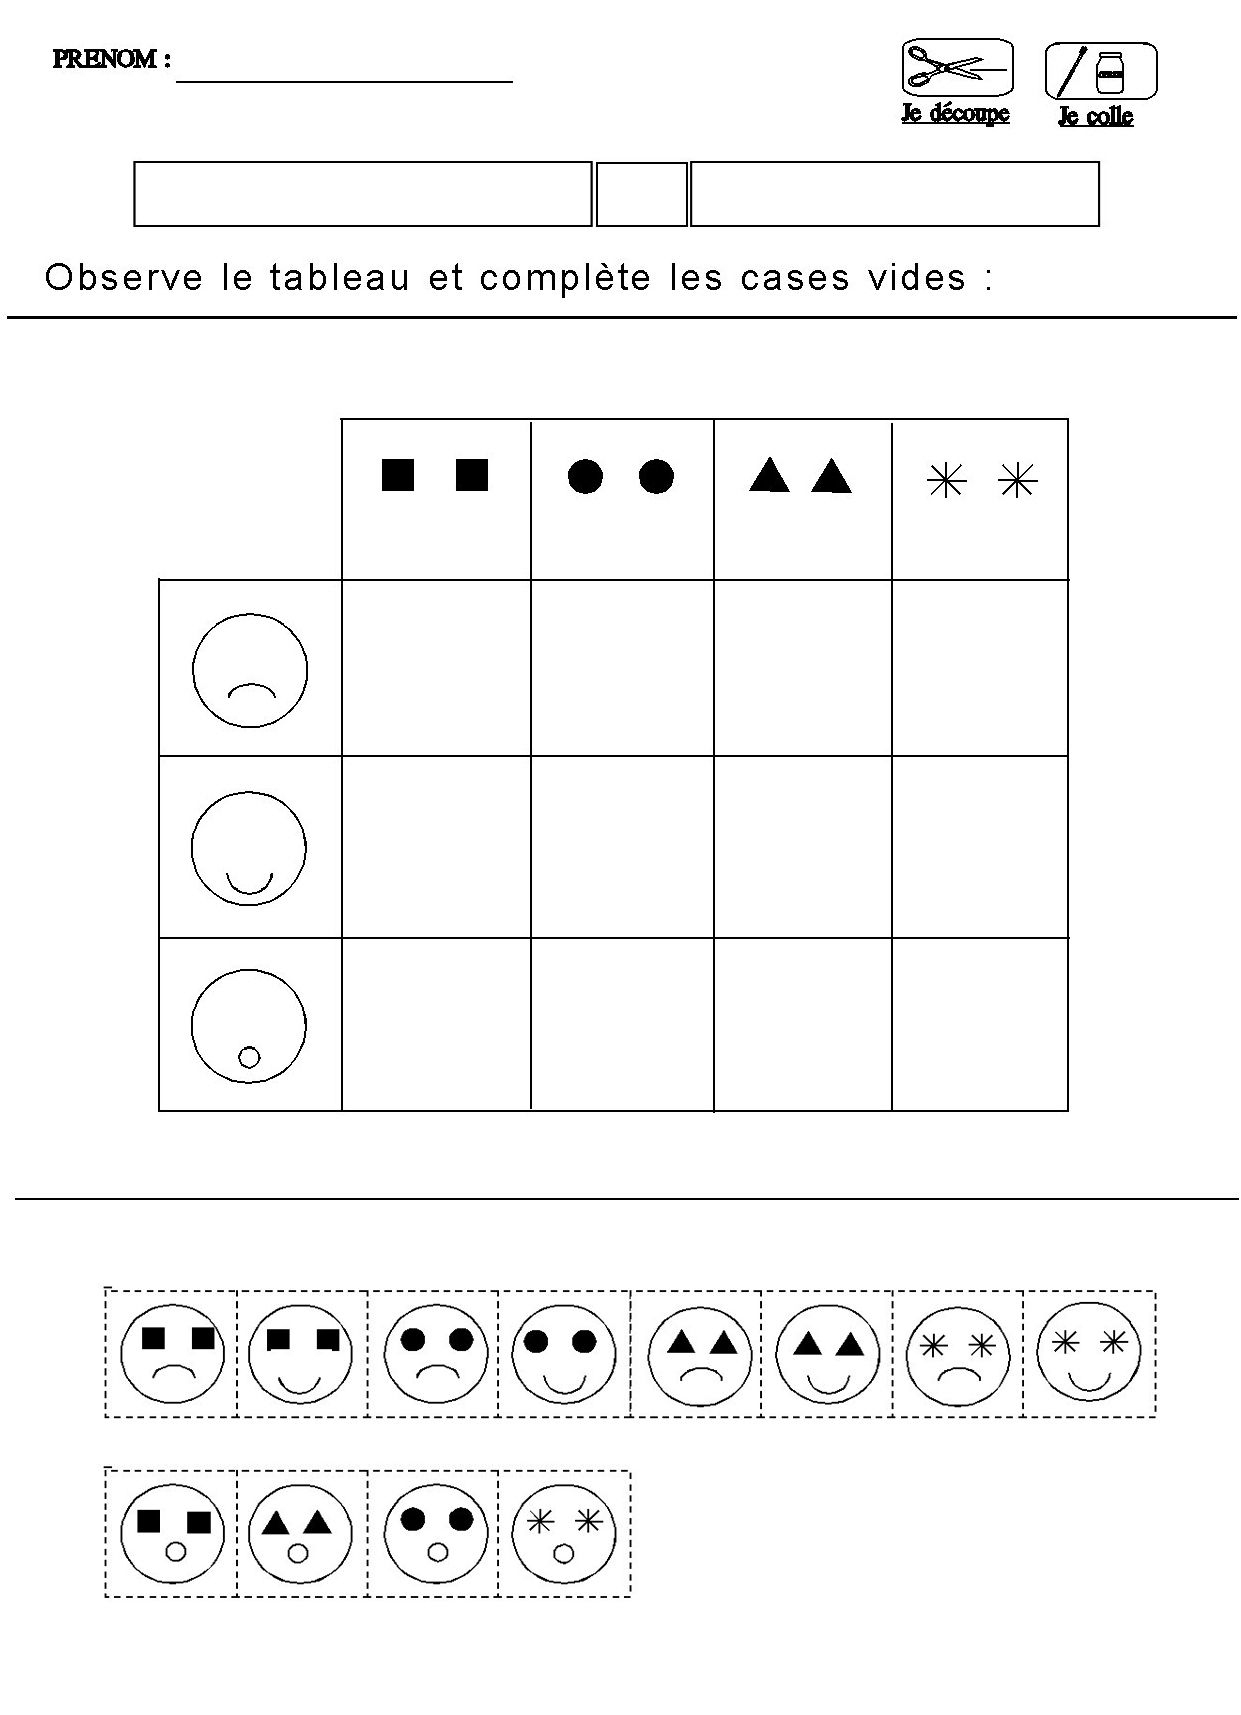 Tableau Double Entrees Pour Maternelle Moyenne Section concernant Exercices Moyenne Section Maternelle Pdf